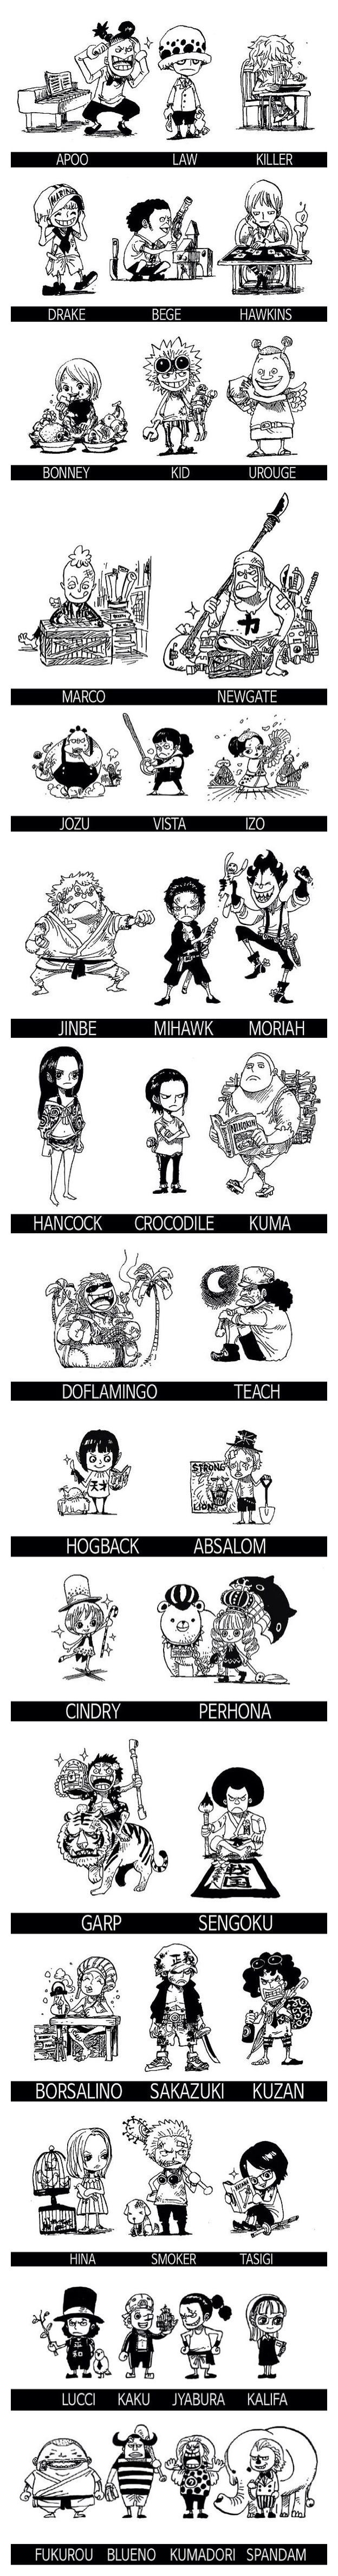 One Piece, Younger>>Who would have thought what they would become in the future??